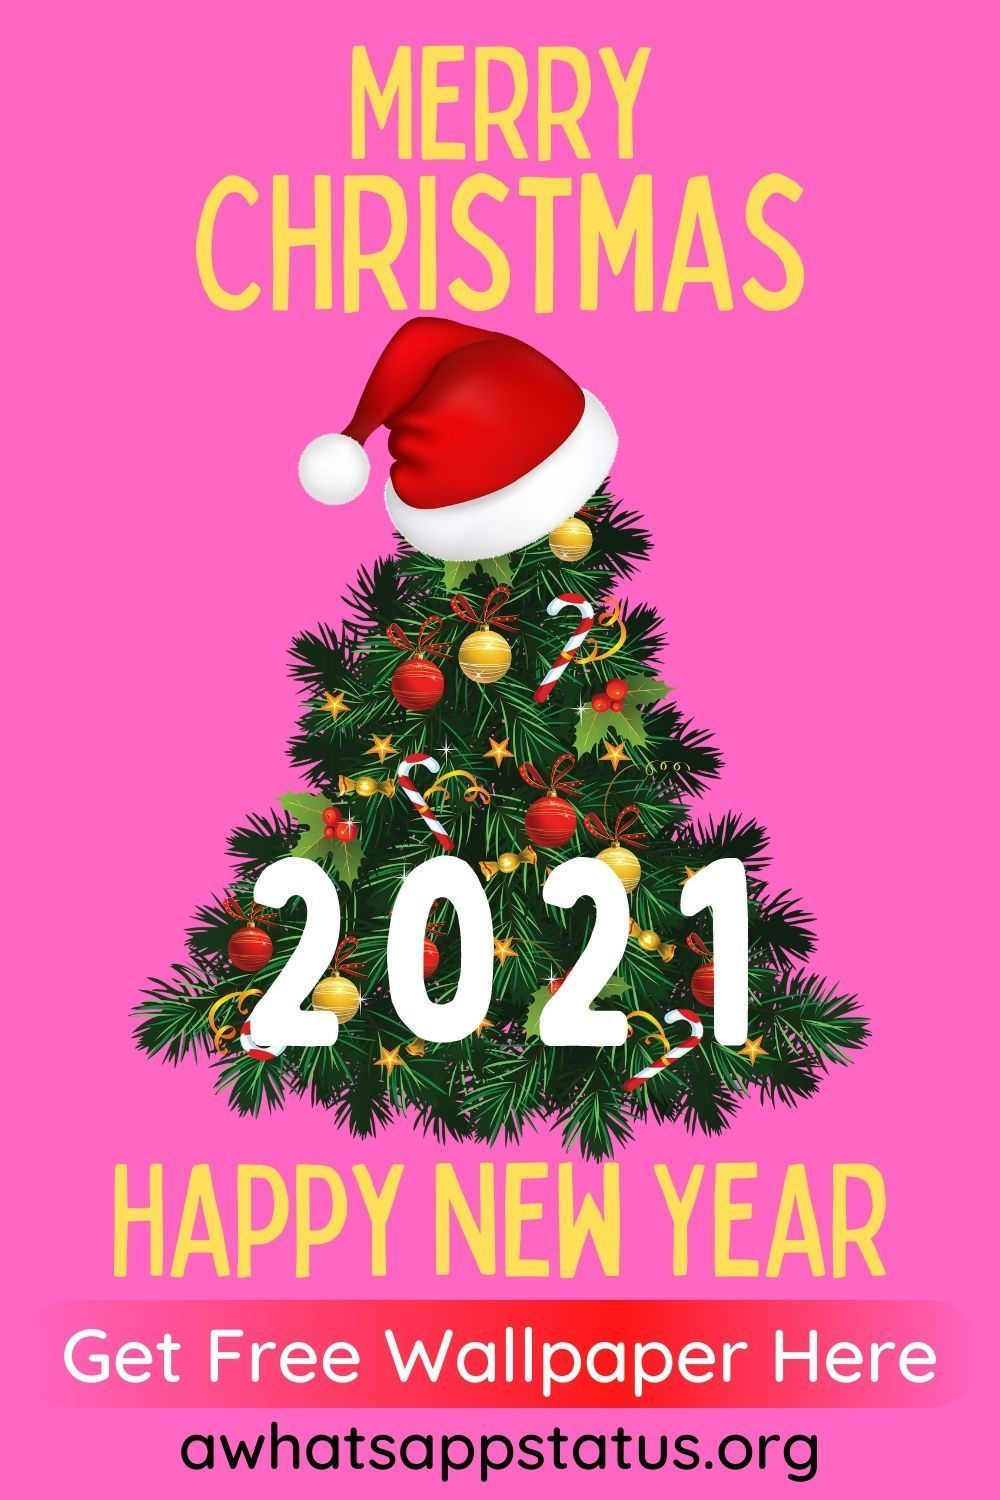 15 Merry Christmas And Happy New Year 2021 Wallpaper Well Decorate Happy New Year 2021 Wallpapers Merry Christmas And Happy New Year New Year 2021 Wallpaper